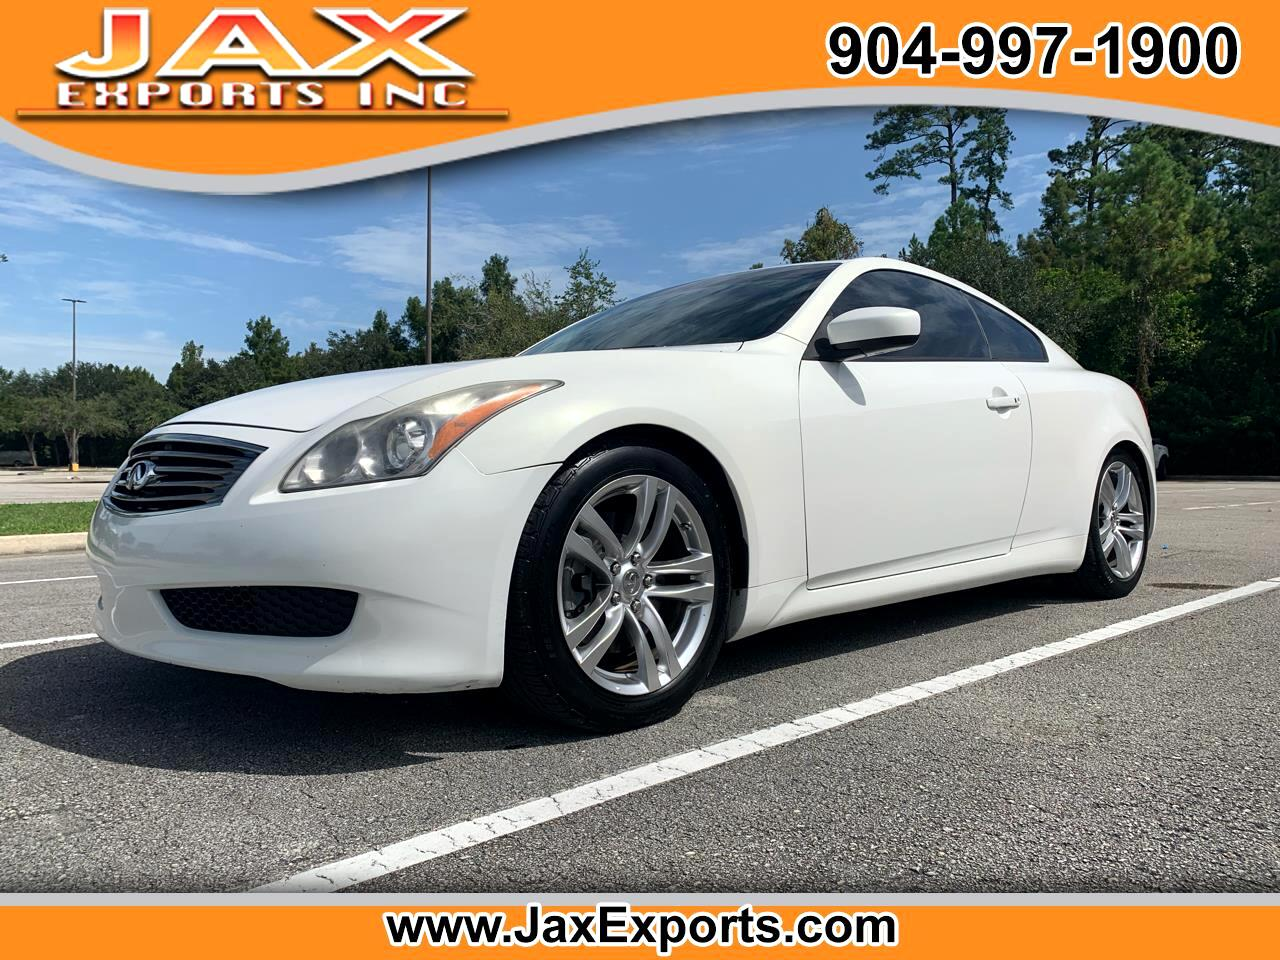 Infiniti G37 Coupe 2dr Journey RWD 2009